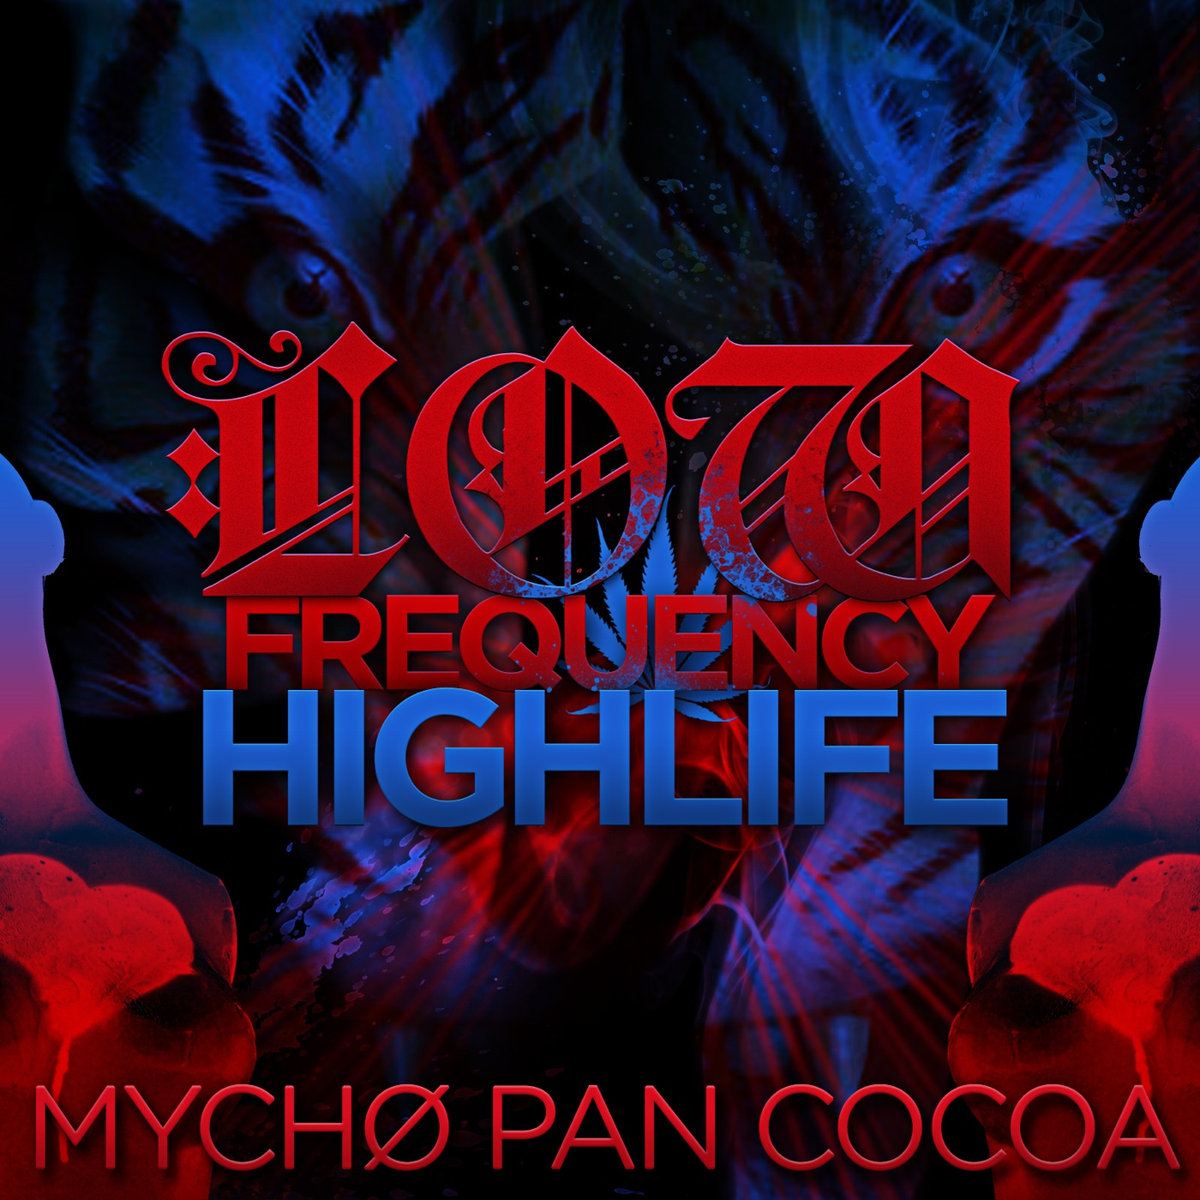 Mycho Pan Cocoa - Porto Mental (Zombie-J Remix) @ 'Low Frequency High Life' album (electronic, dubstep)